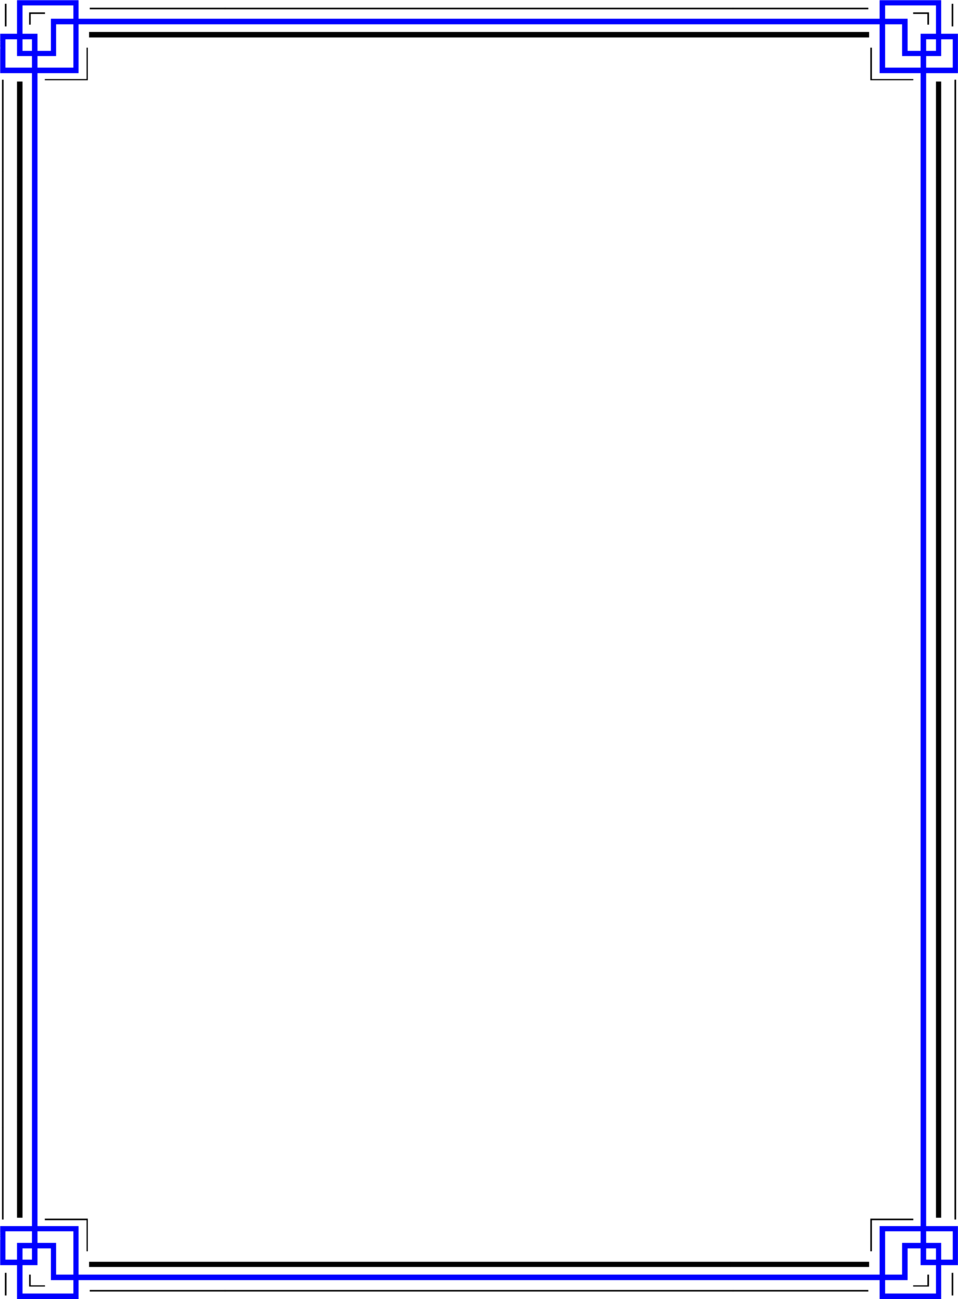 Illustration Of A Blank Blue Frame Border Free Stock Photo